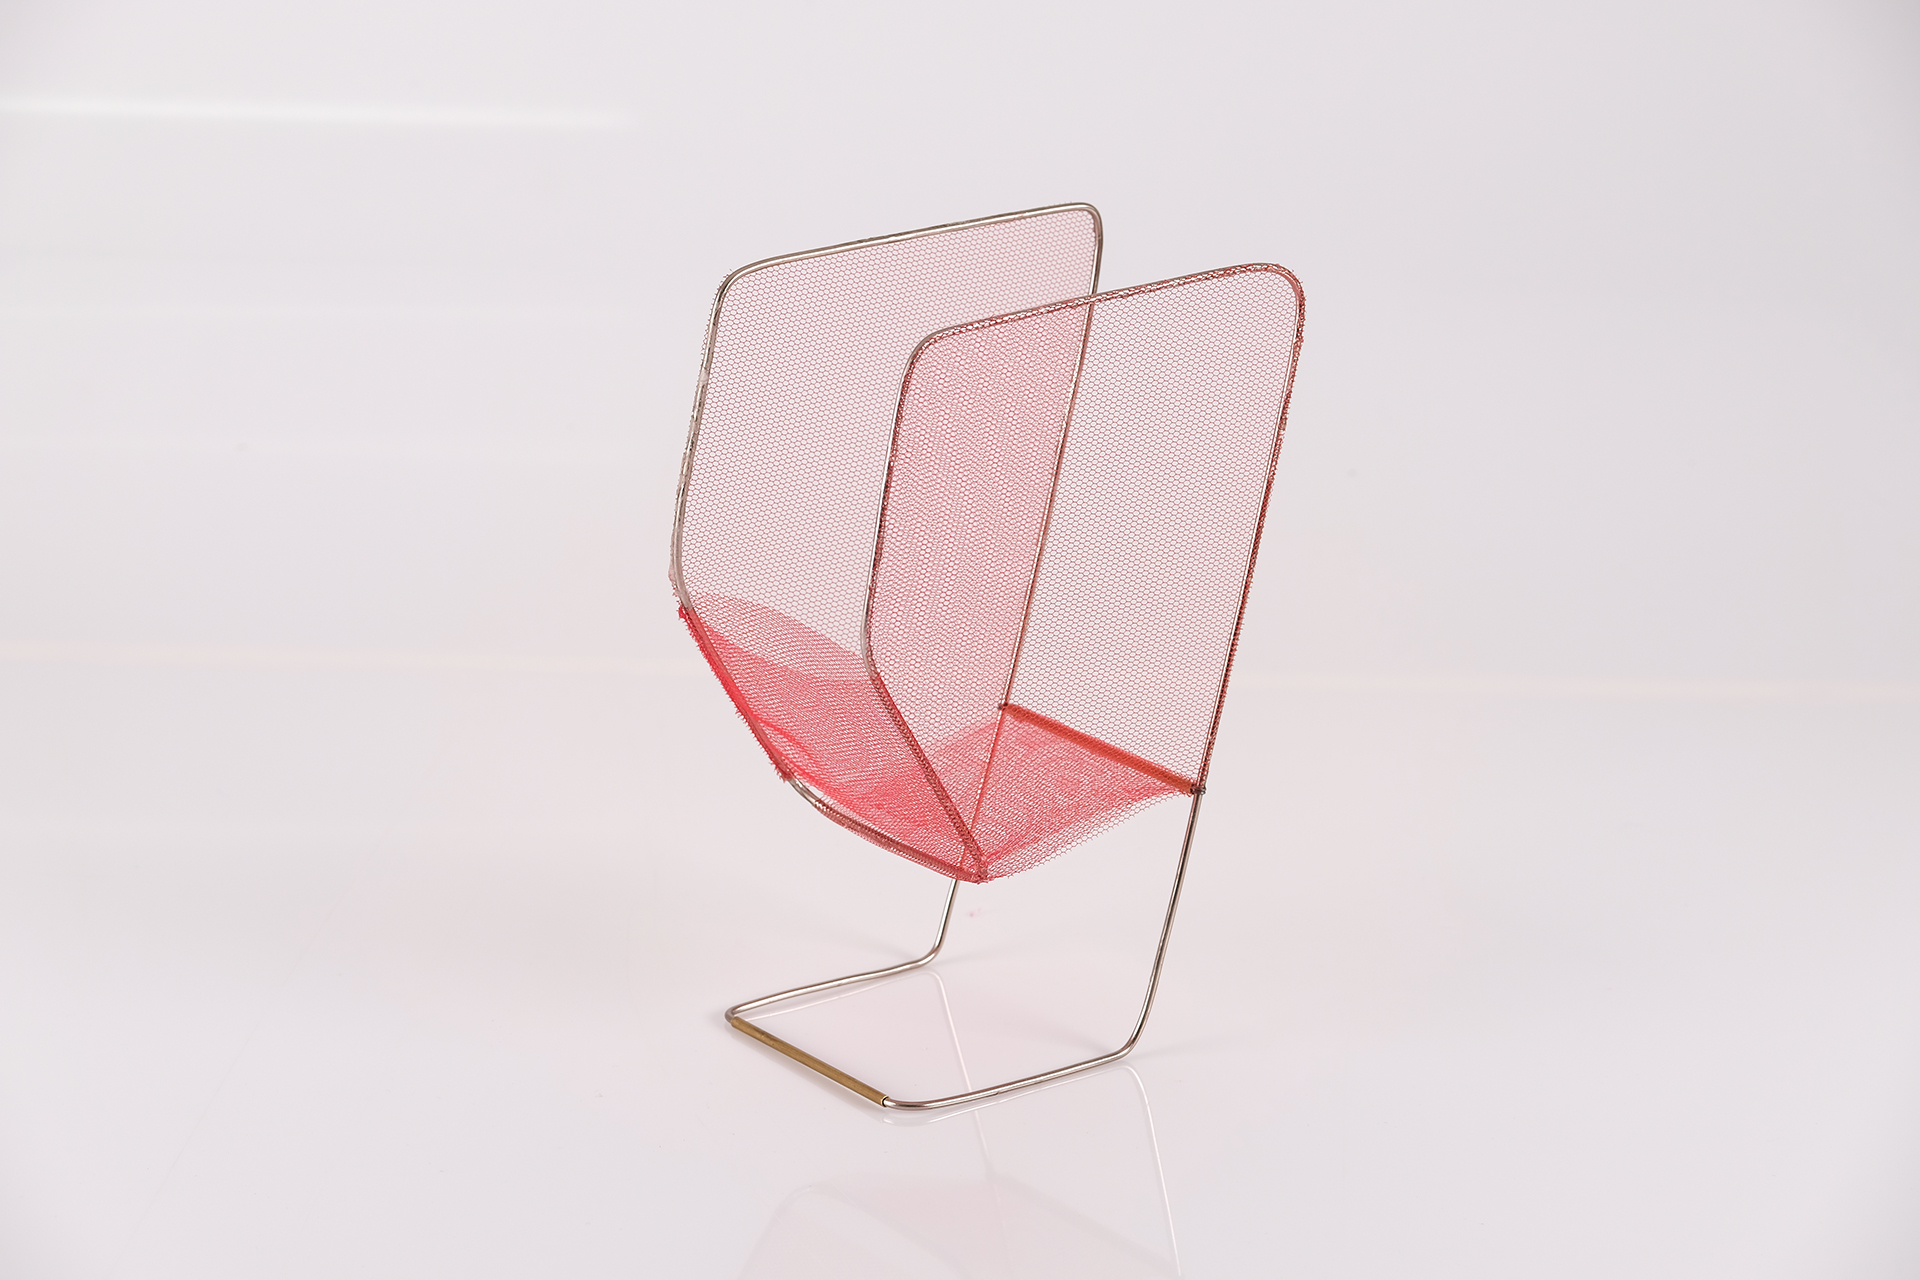 Vitra DIDI Chair competition